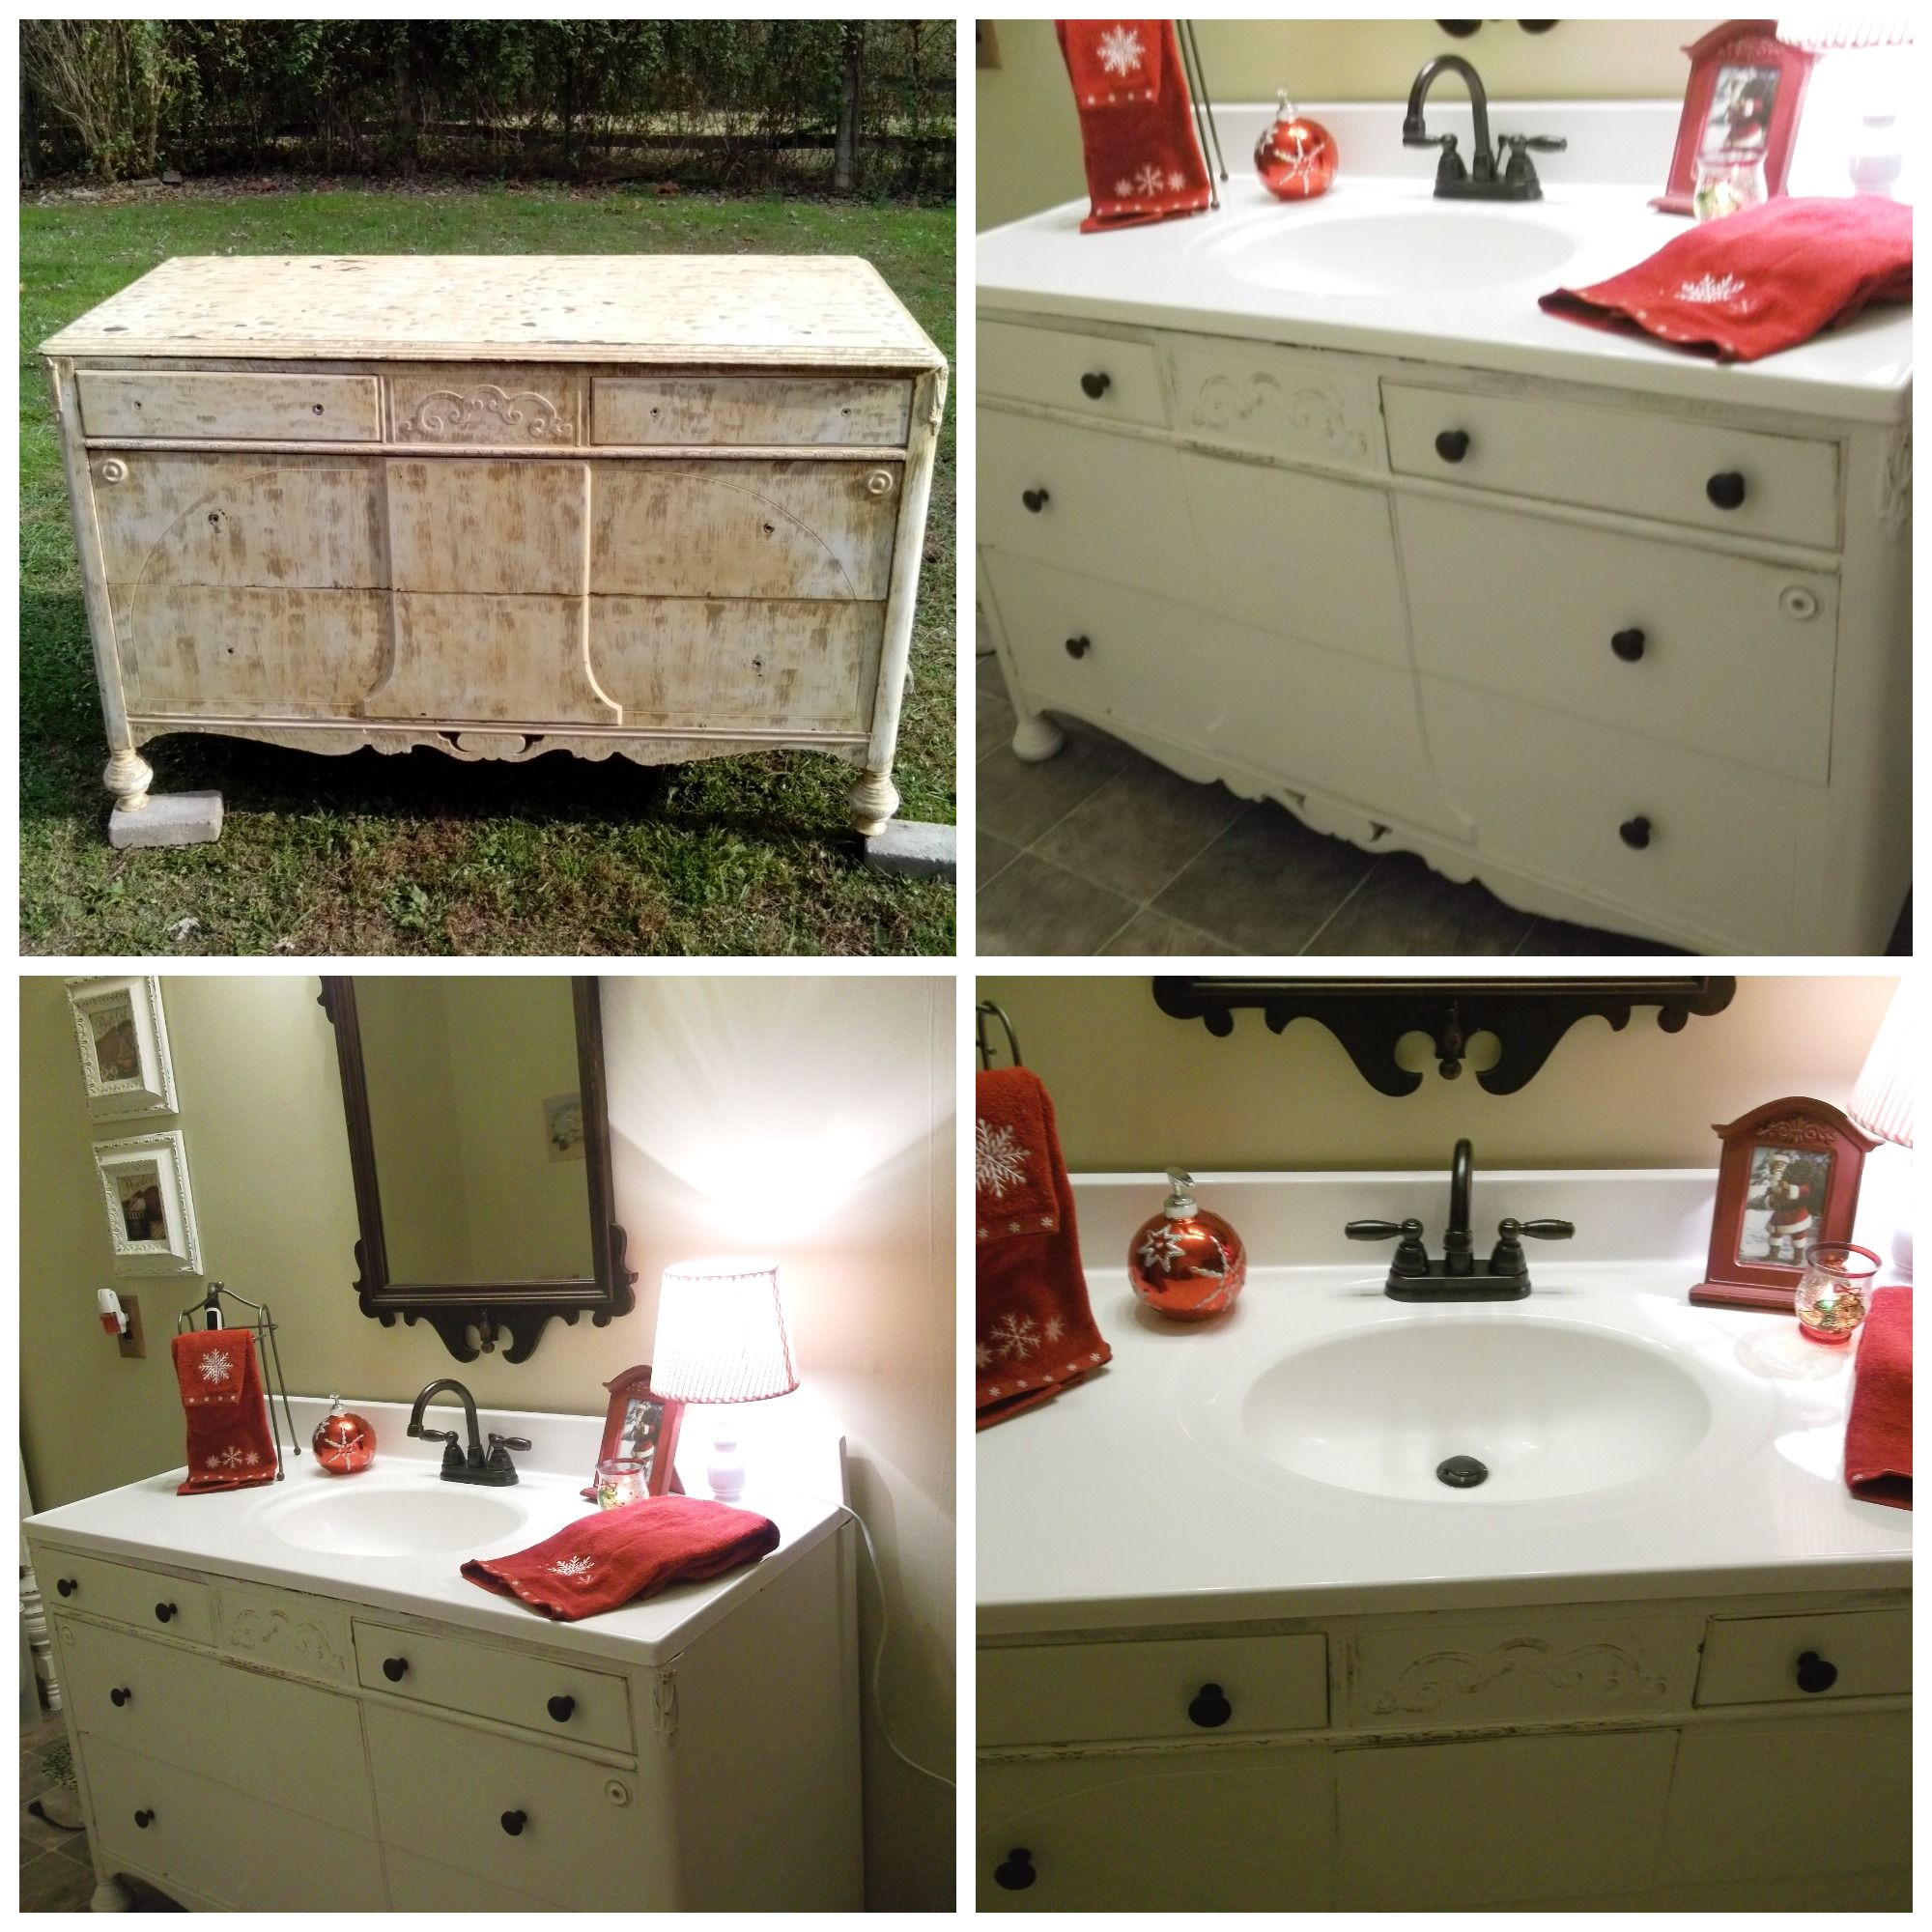 My Attempt At Repurposing An Old Dresser That My Sister,